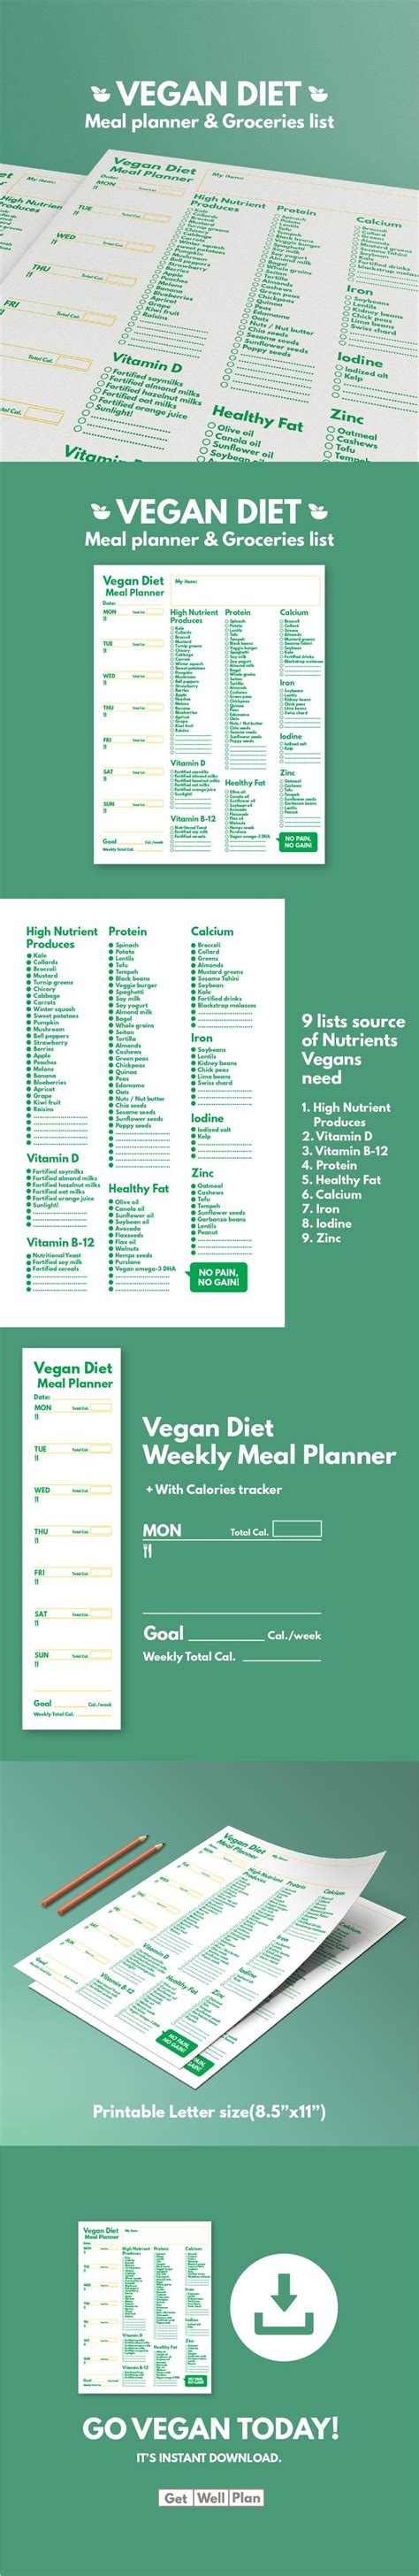 tbt updated grocery list with meal planner positive inspired living